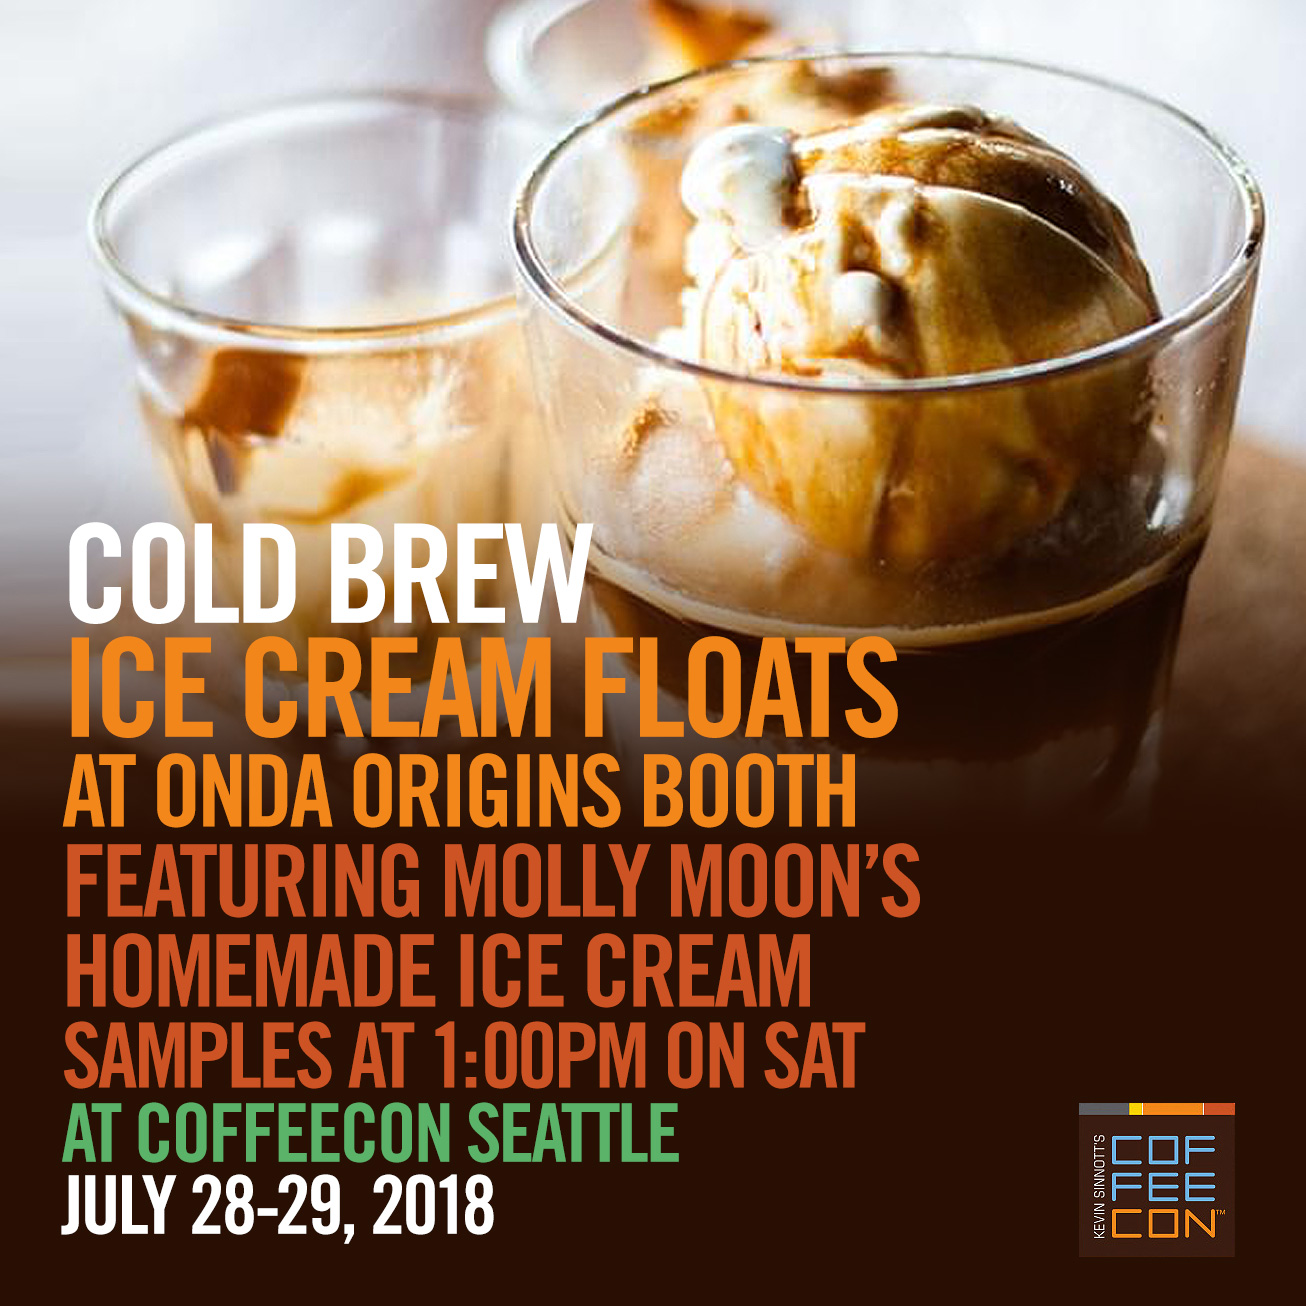 Cold Brew Ice Cream Floats